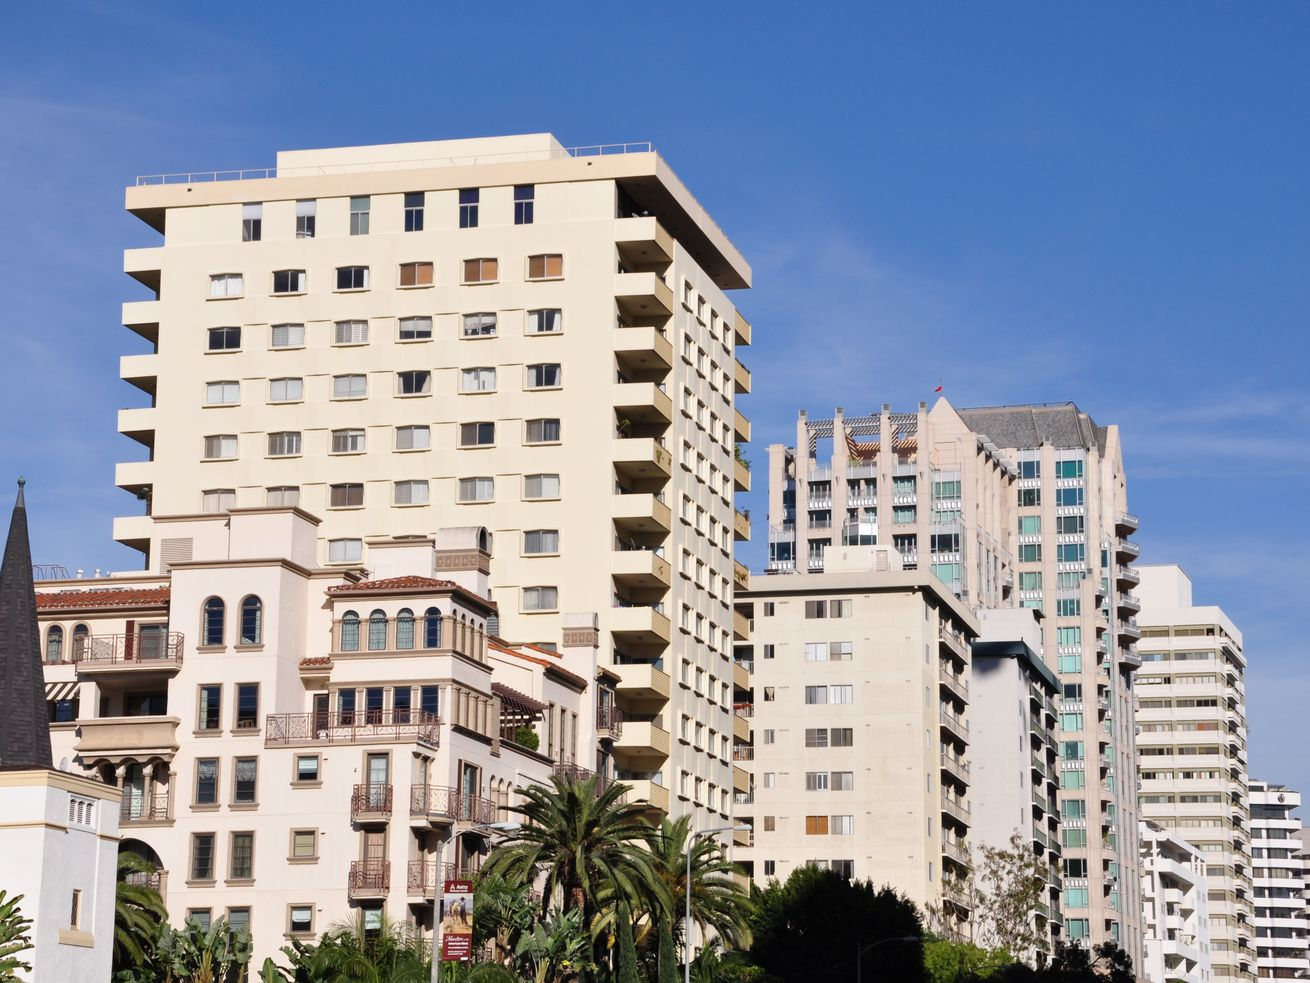 A median-priced LA County condo sold for $430,000 in December.